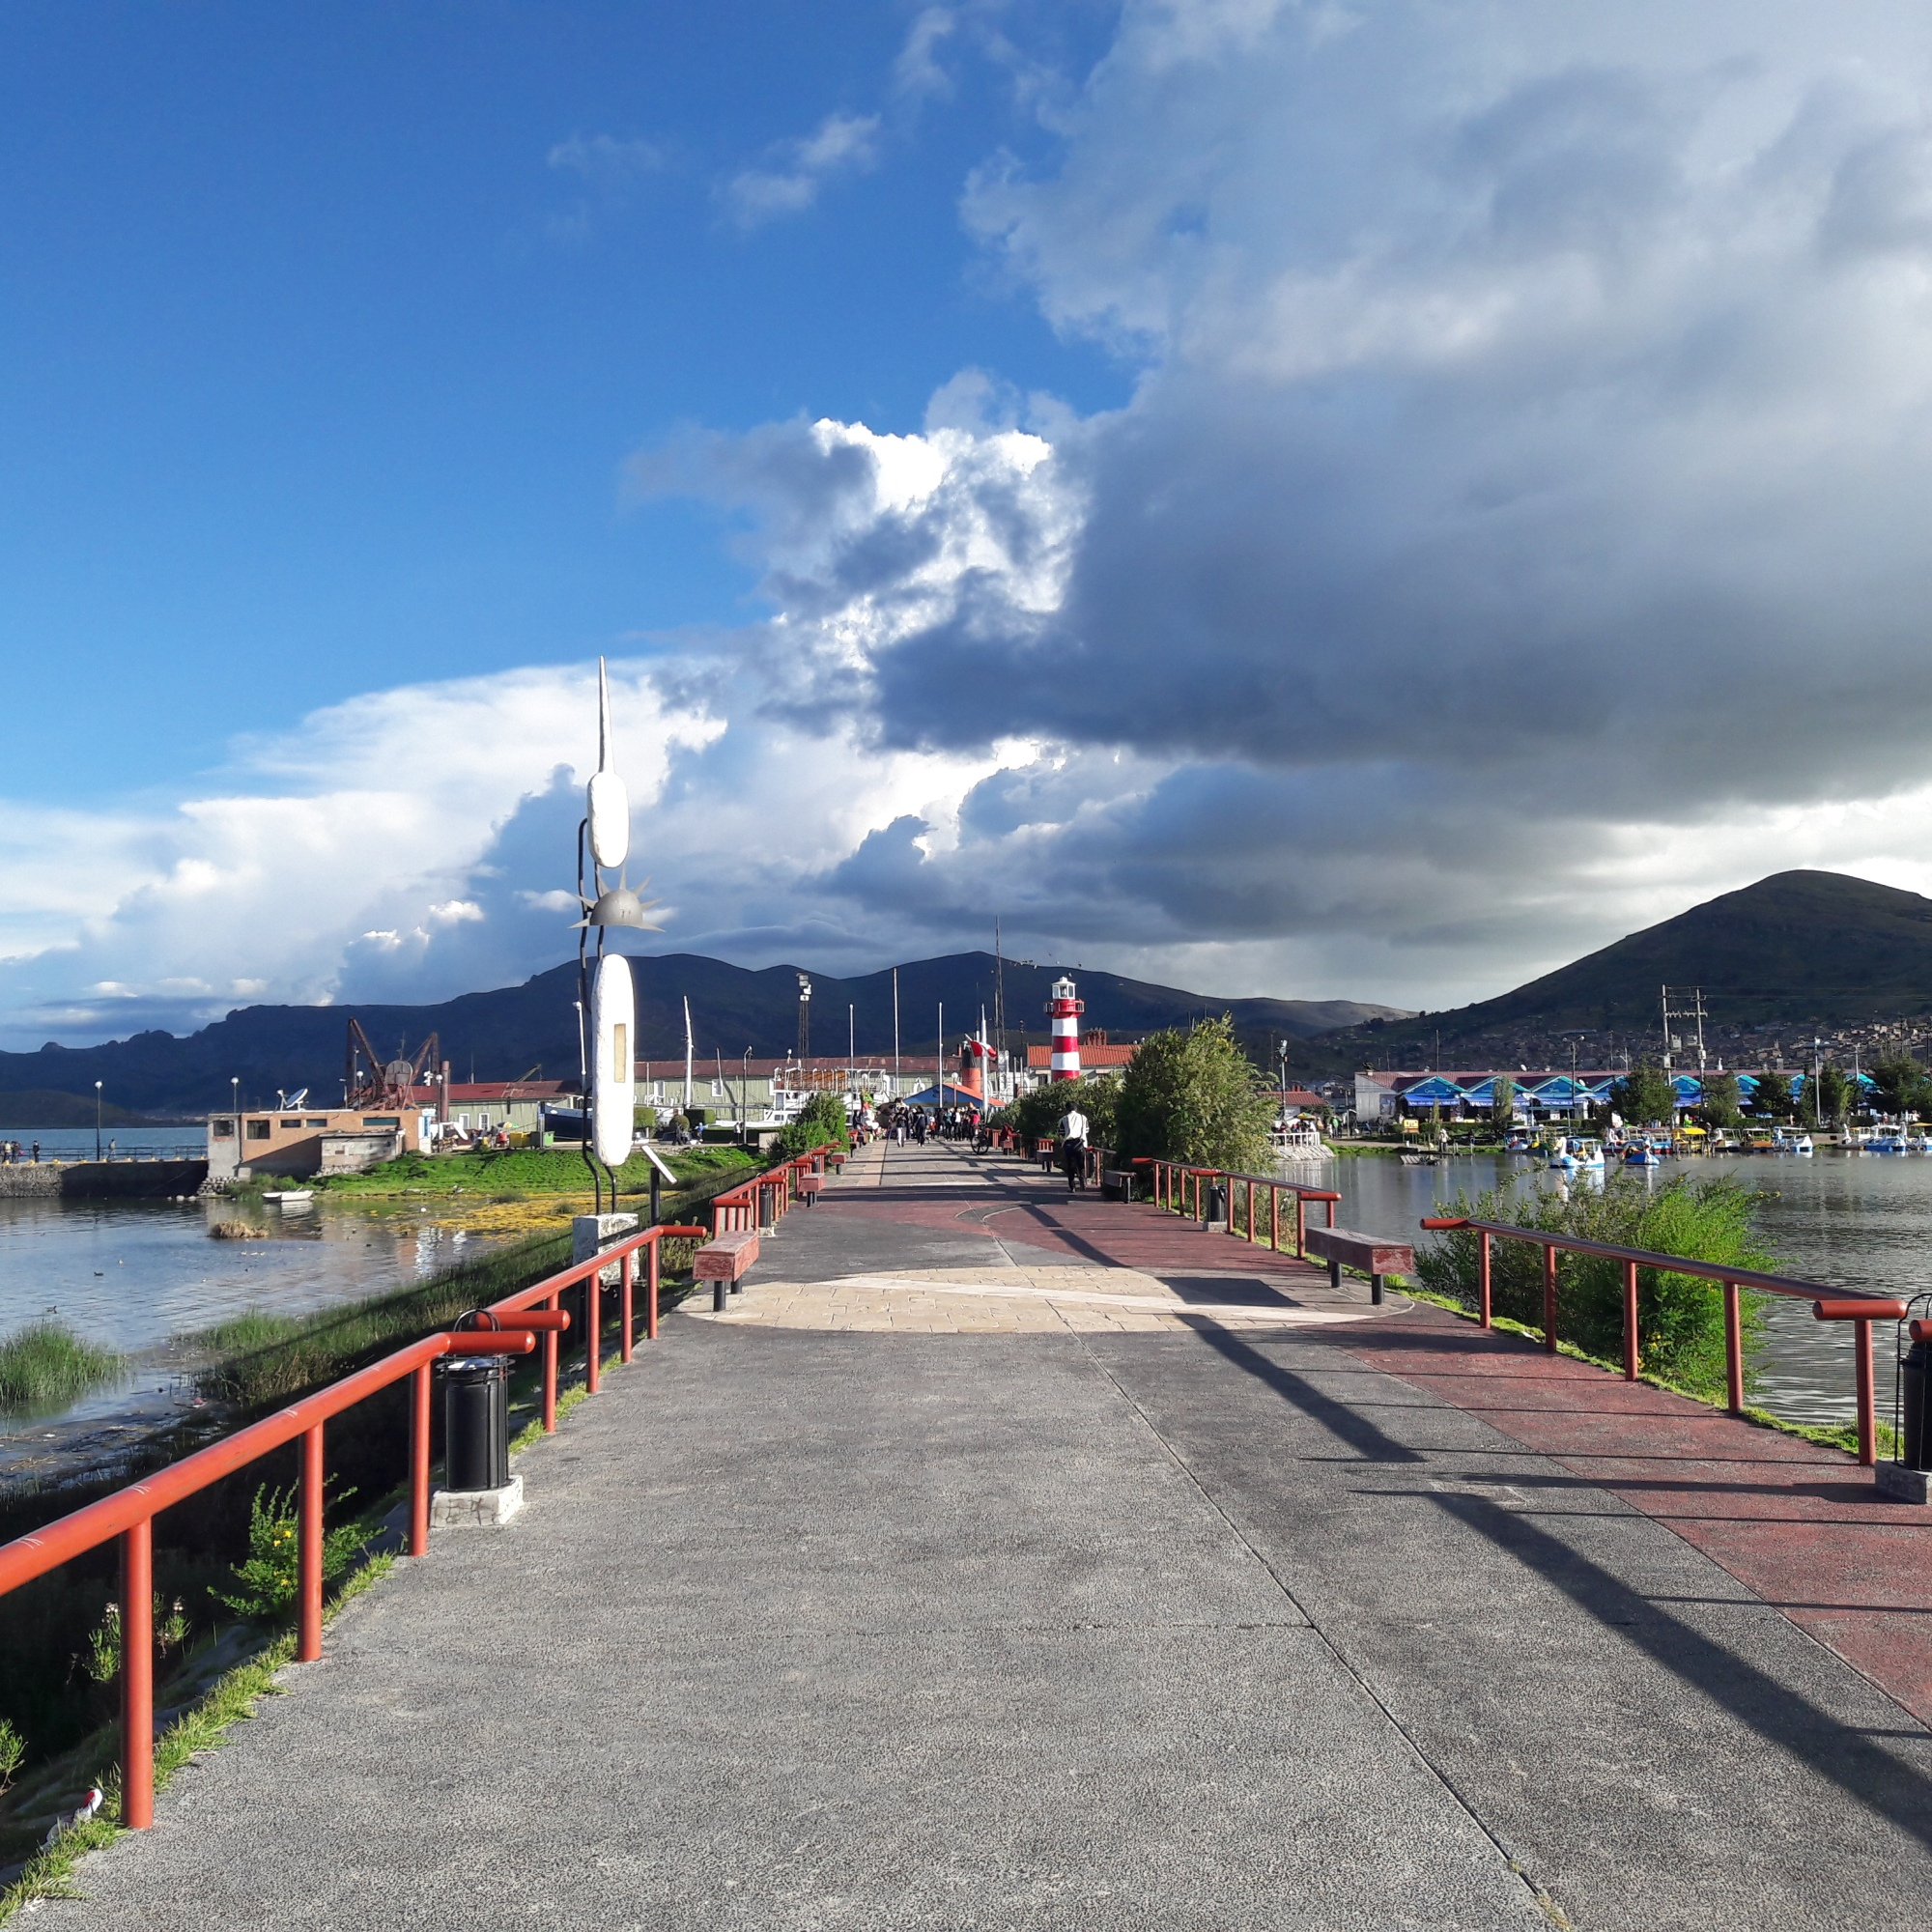 A street with mountains in the background. A lake both sides. the sides.